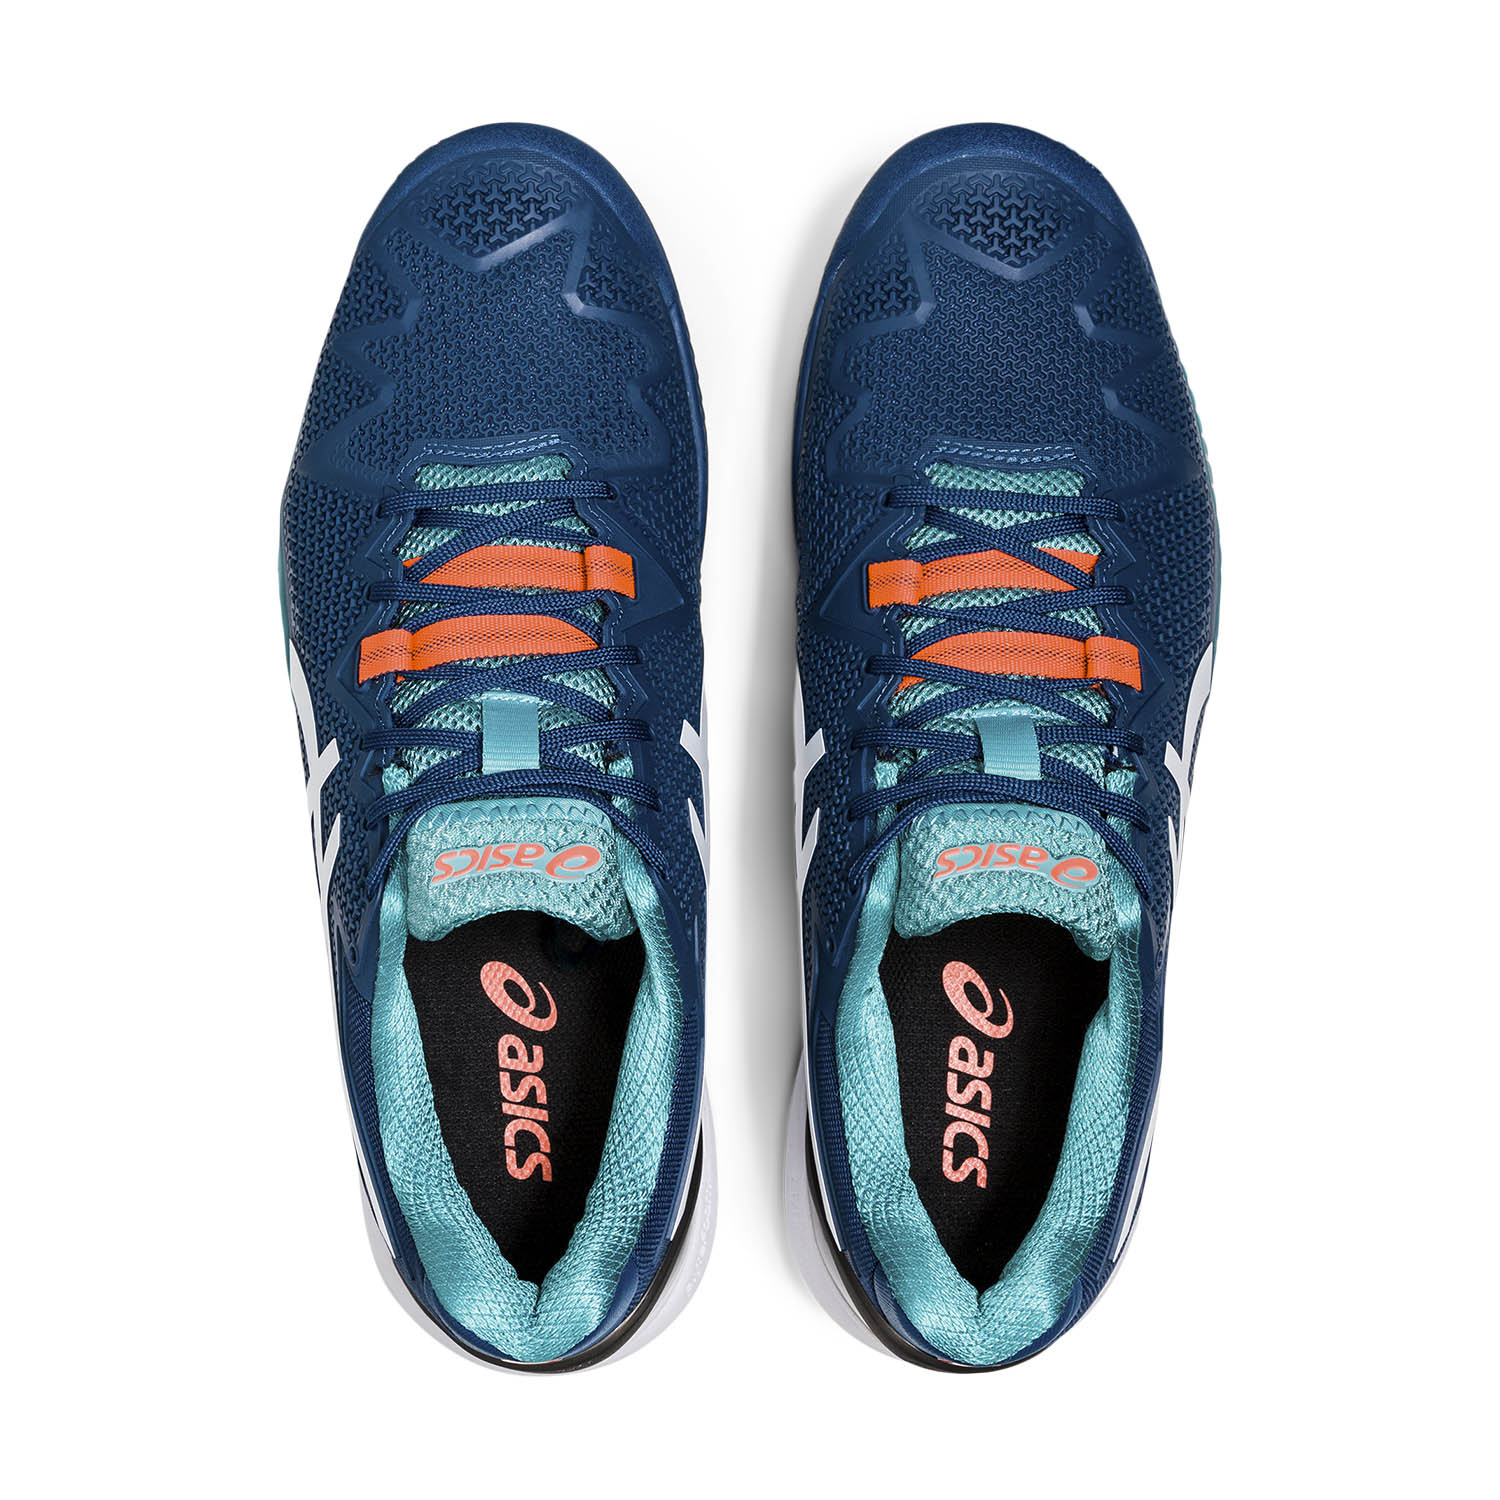 Asics Gel Resolution 8 Clay - Mako Blue/White